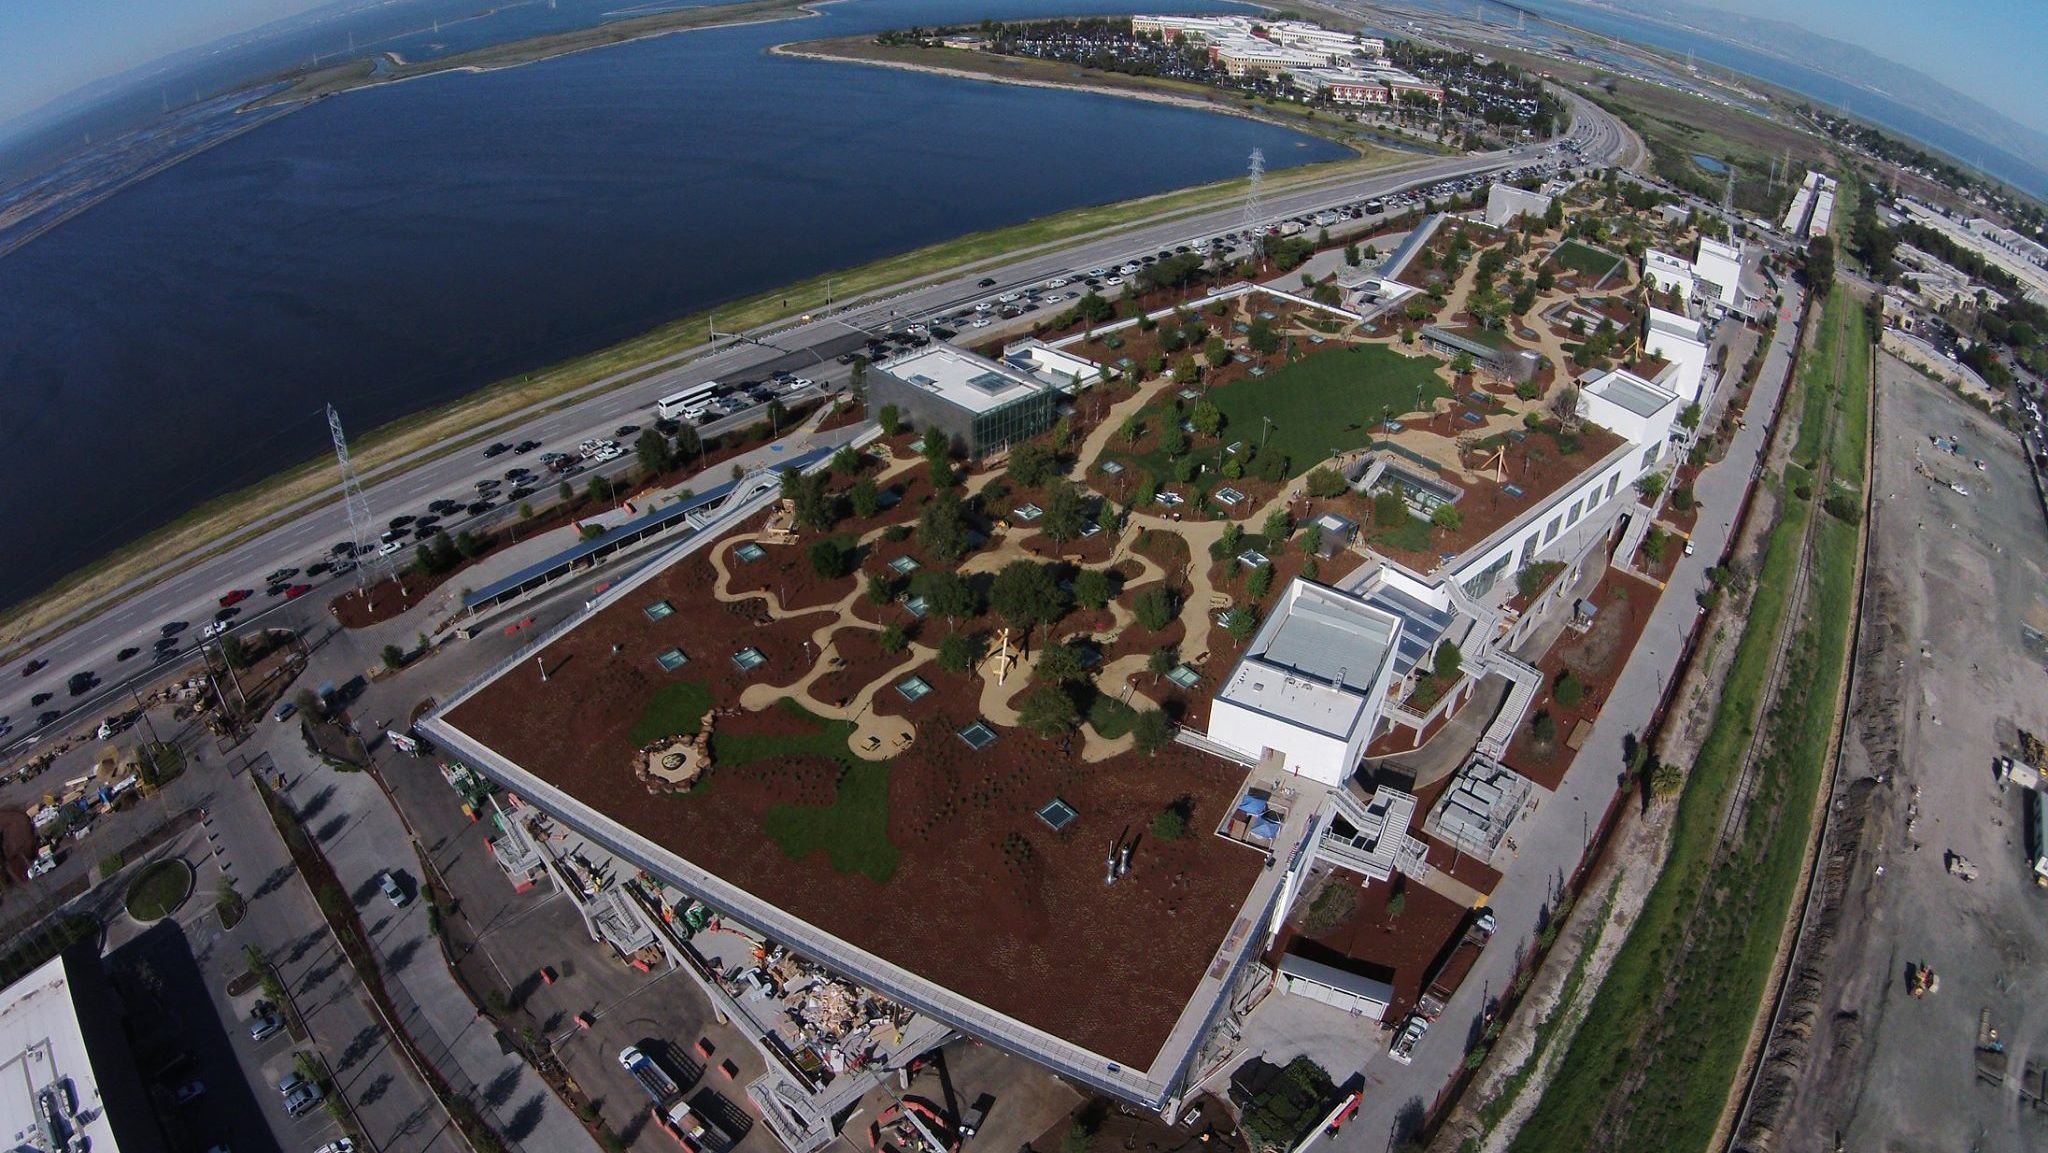 Aerial photograph of Facebook's new Menlo Park campus.